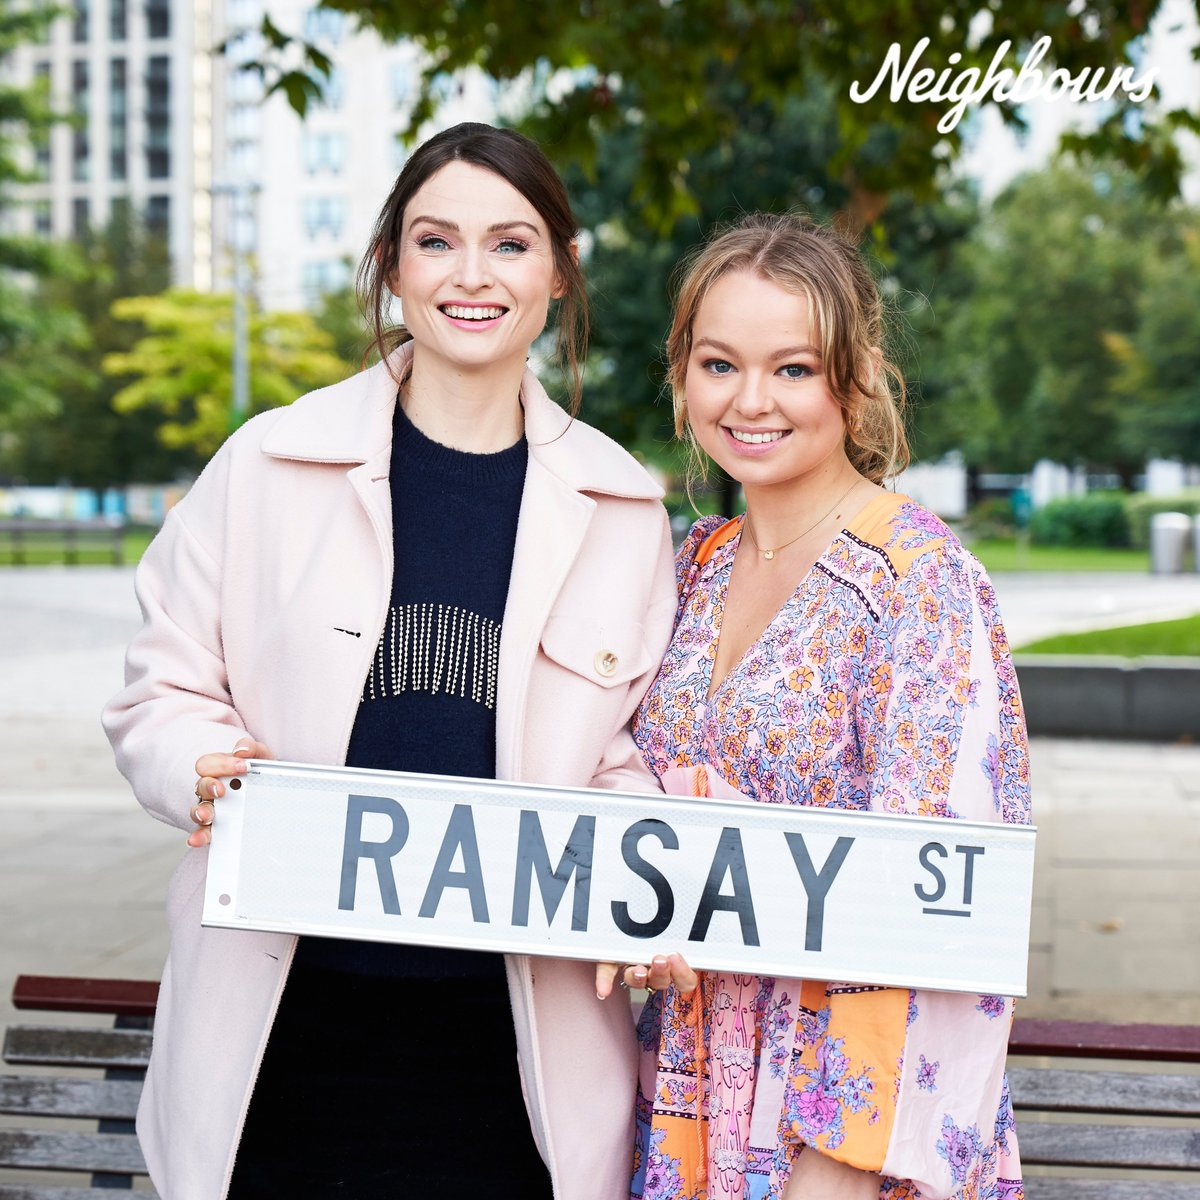 We've had the most exciting week filming here in the UK! 🇬🇧 Who's excited to see what brings Jemma and these very special guests together?! 😍 #Neighbours